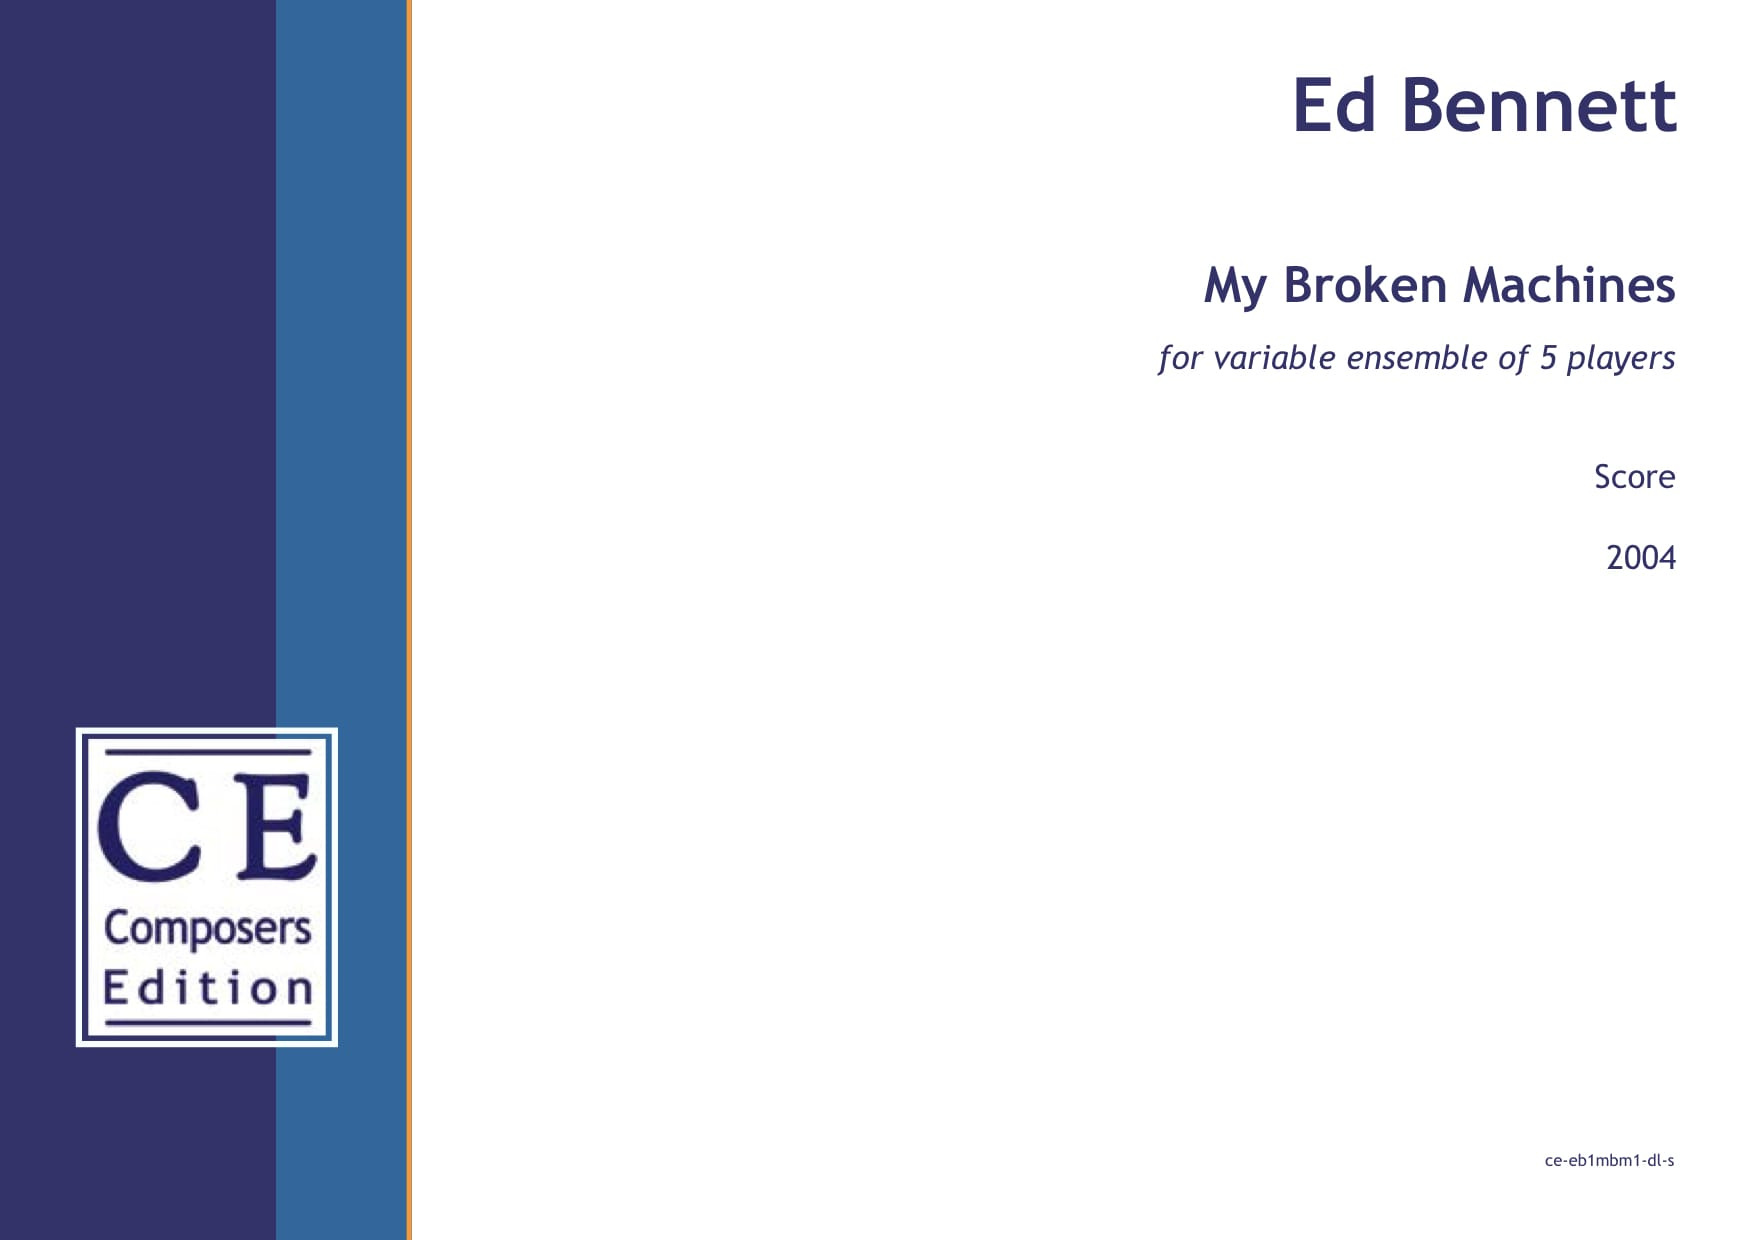 Ed Bennett: My Broken Machines for variable ensemble of 5 players